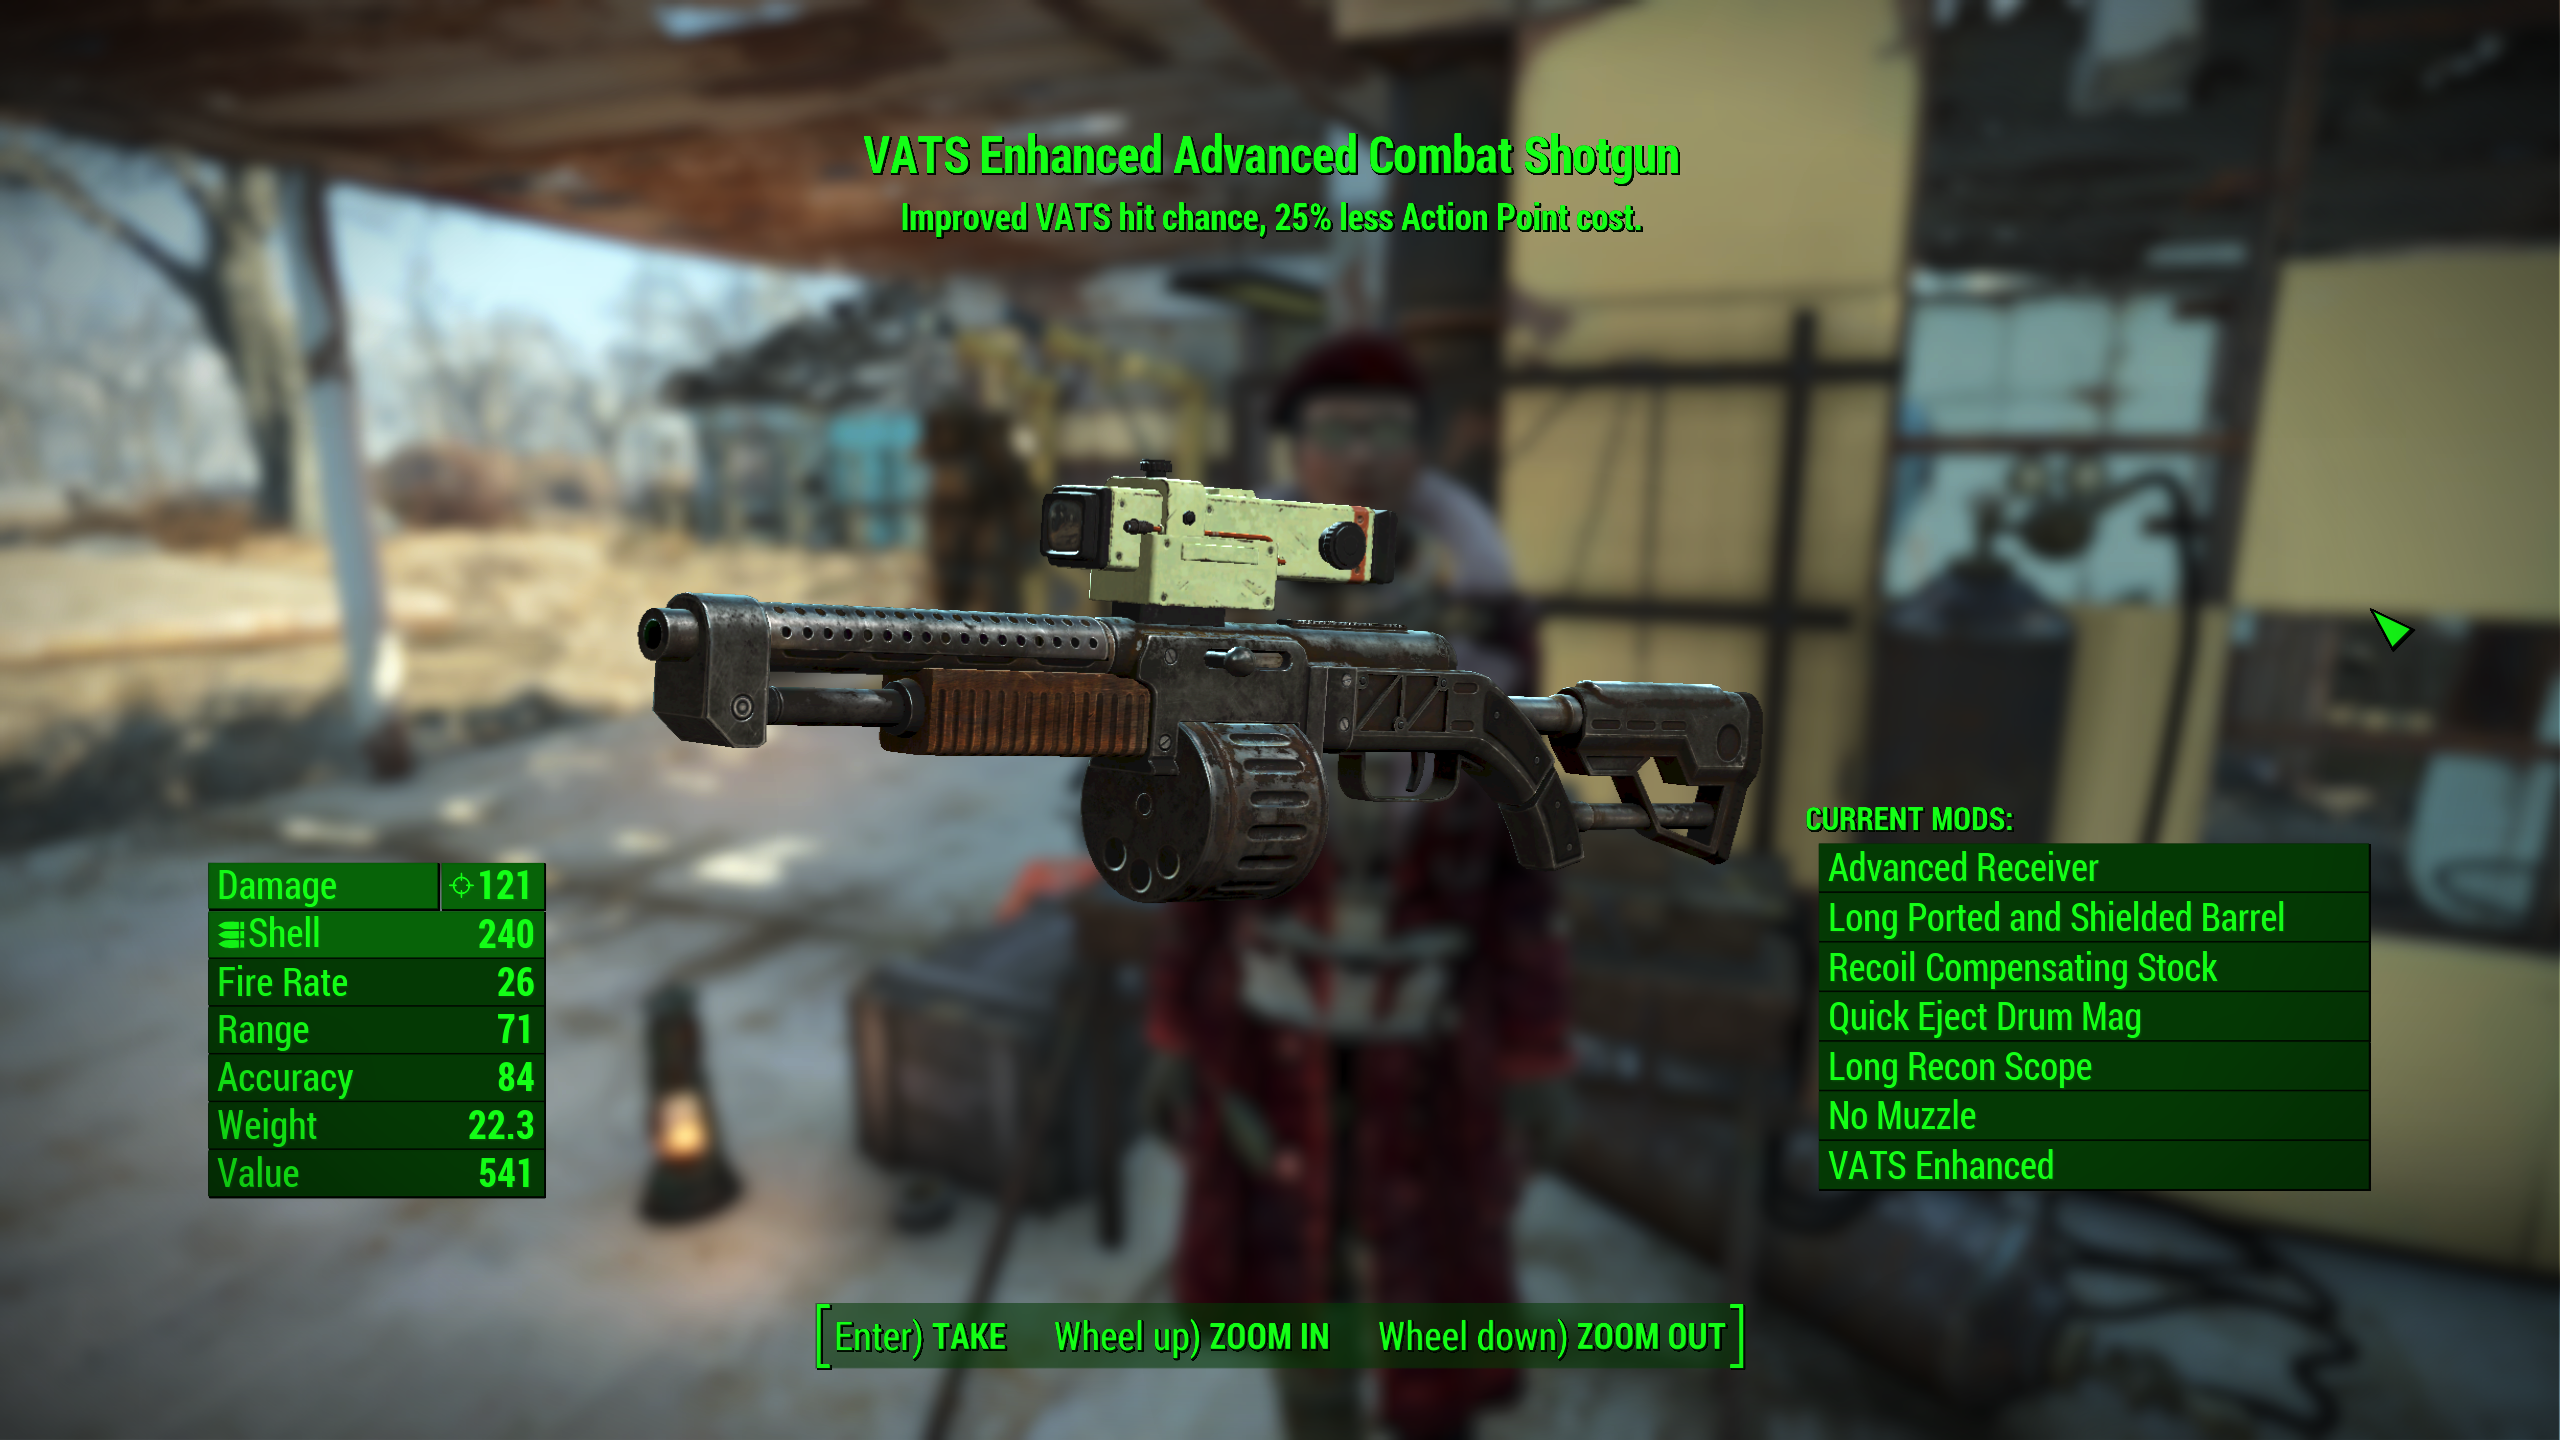 What are your go-to weapons? - Fallout 4 Forum - Neoseeker Forums